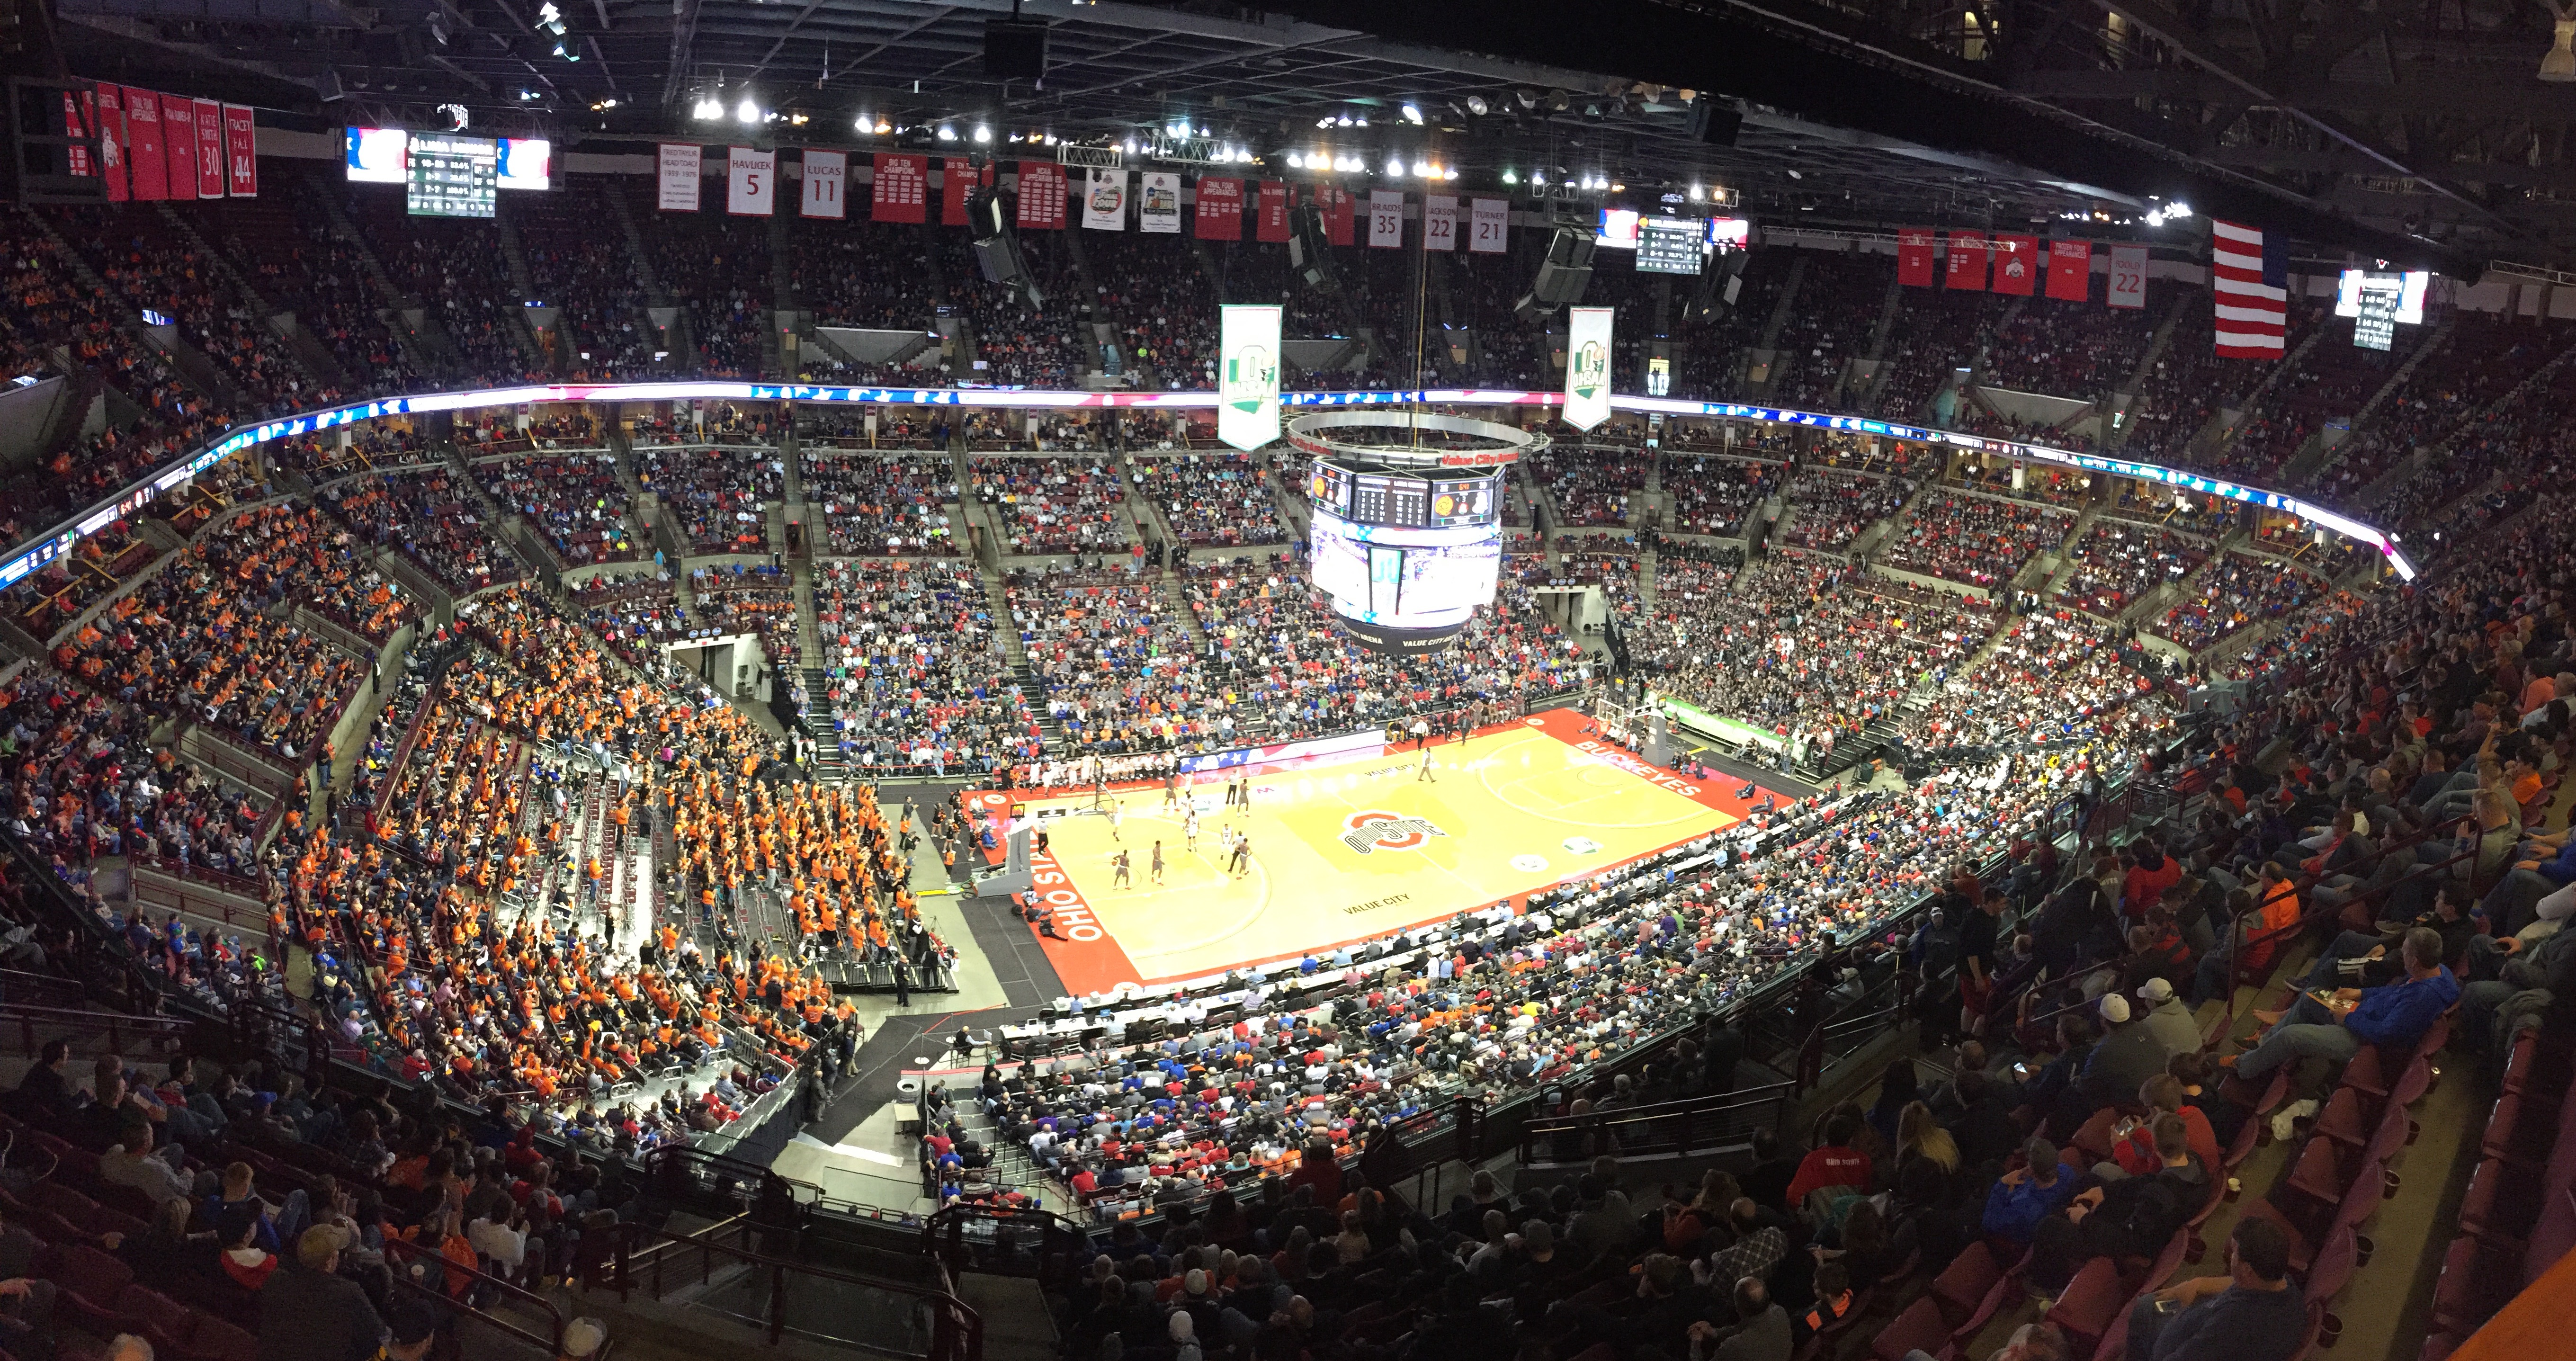 2017 OHSAA Boys Basketball State Tournament Coverage